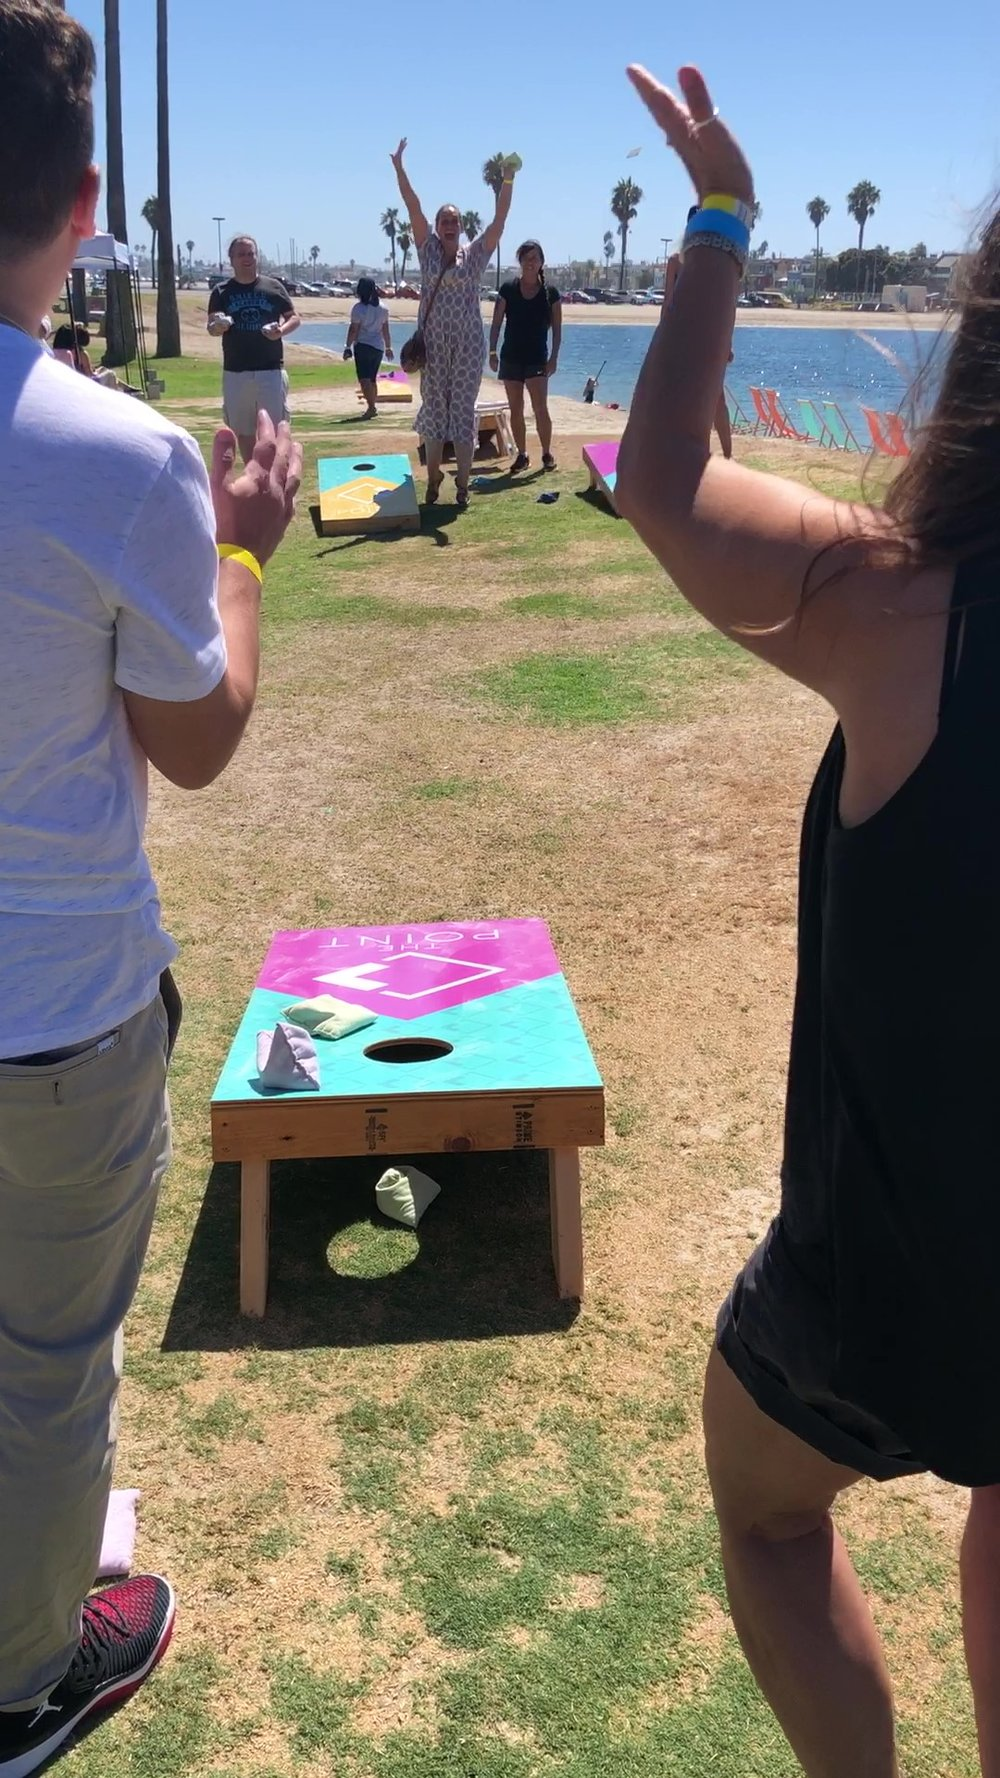 Cornhole Celebration